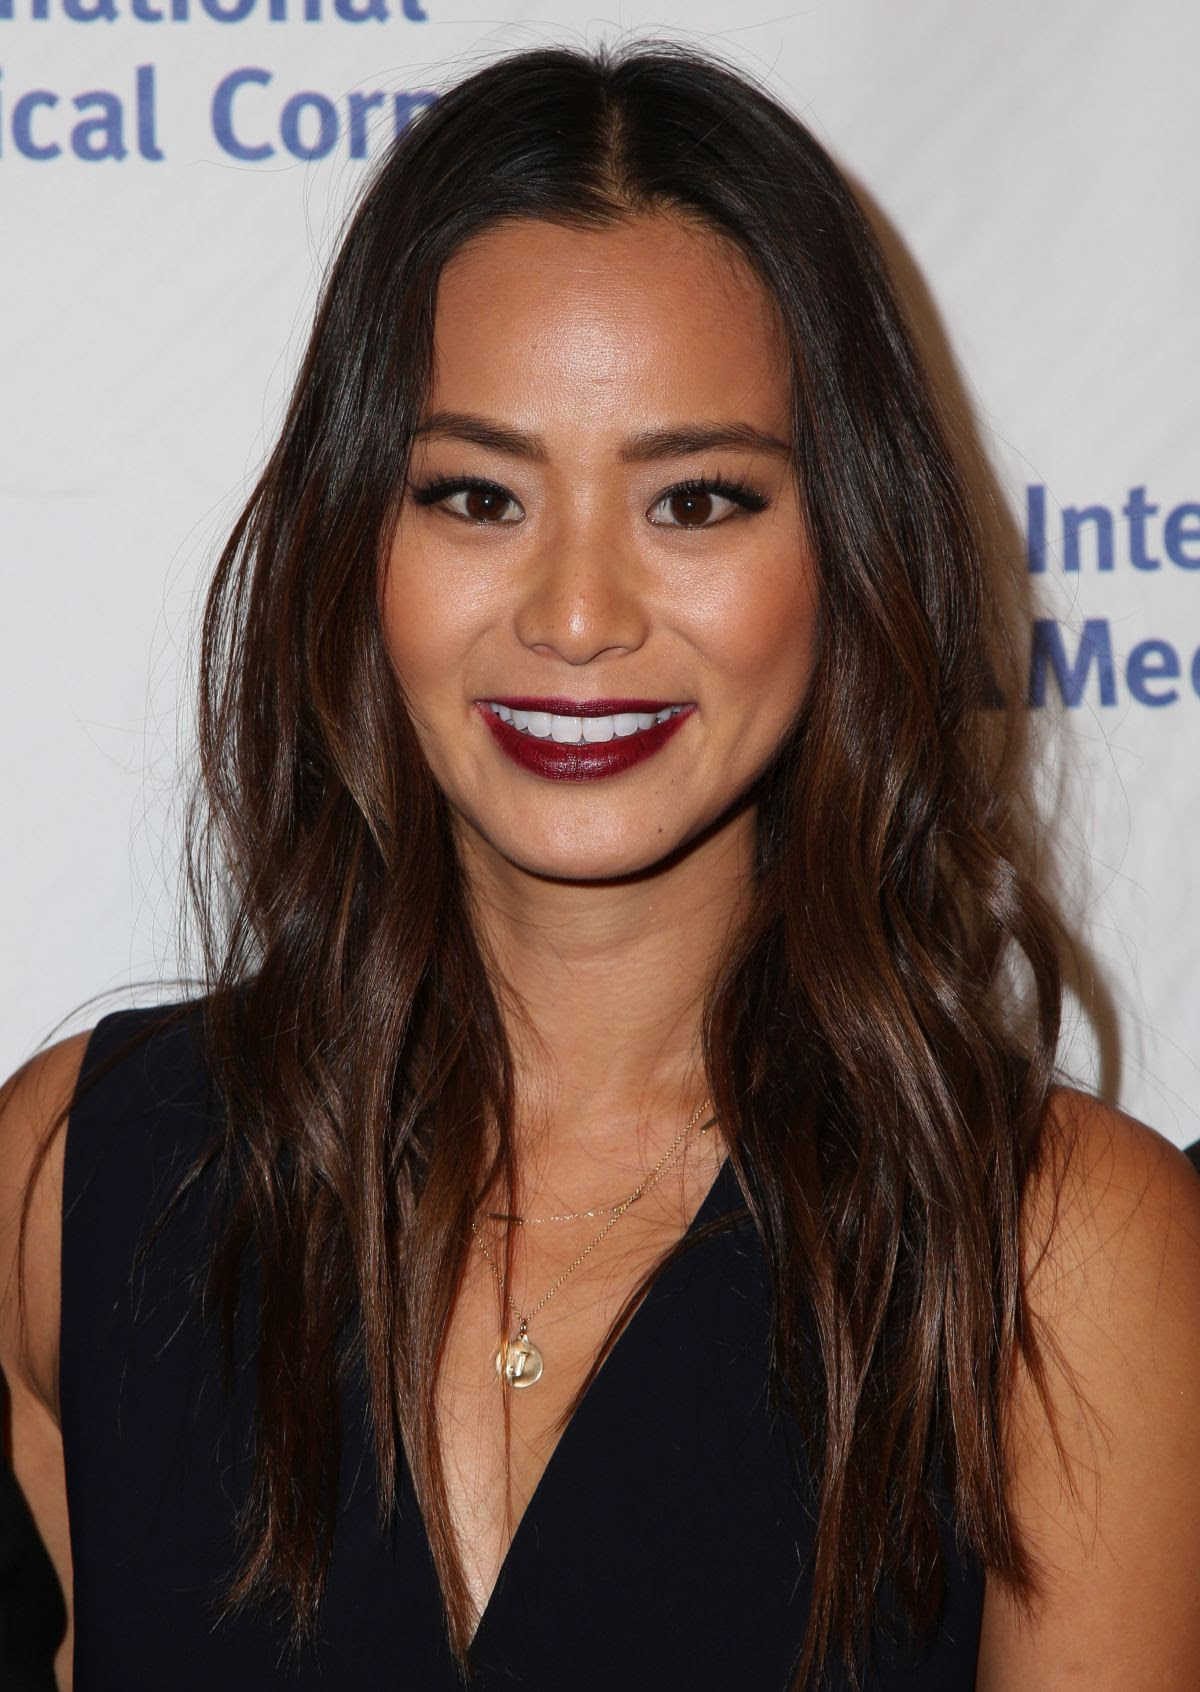 JAMIE CHUNG at imca Awards Celebration in Beverly Hills 11/12/2015